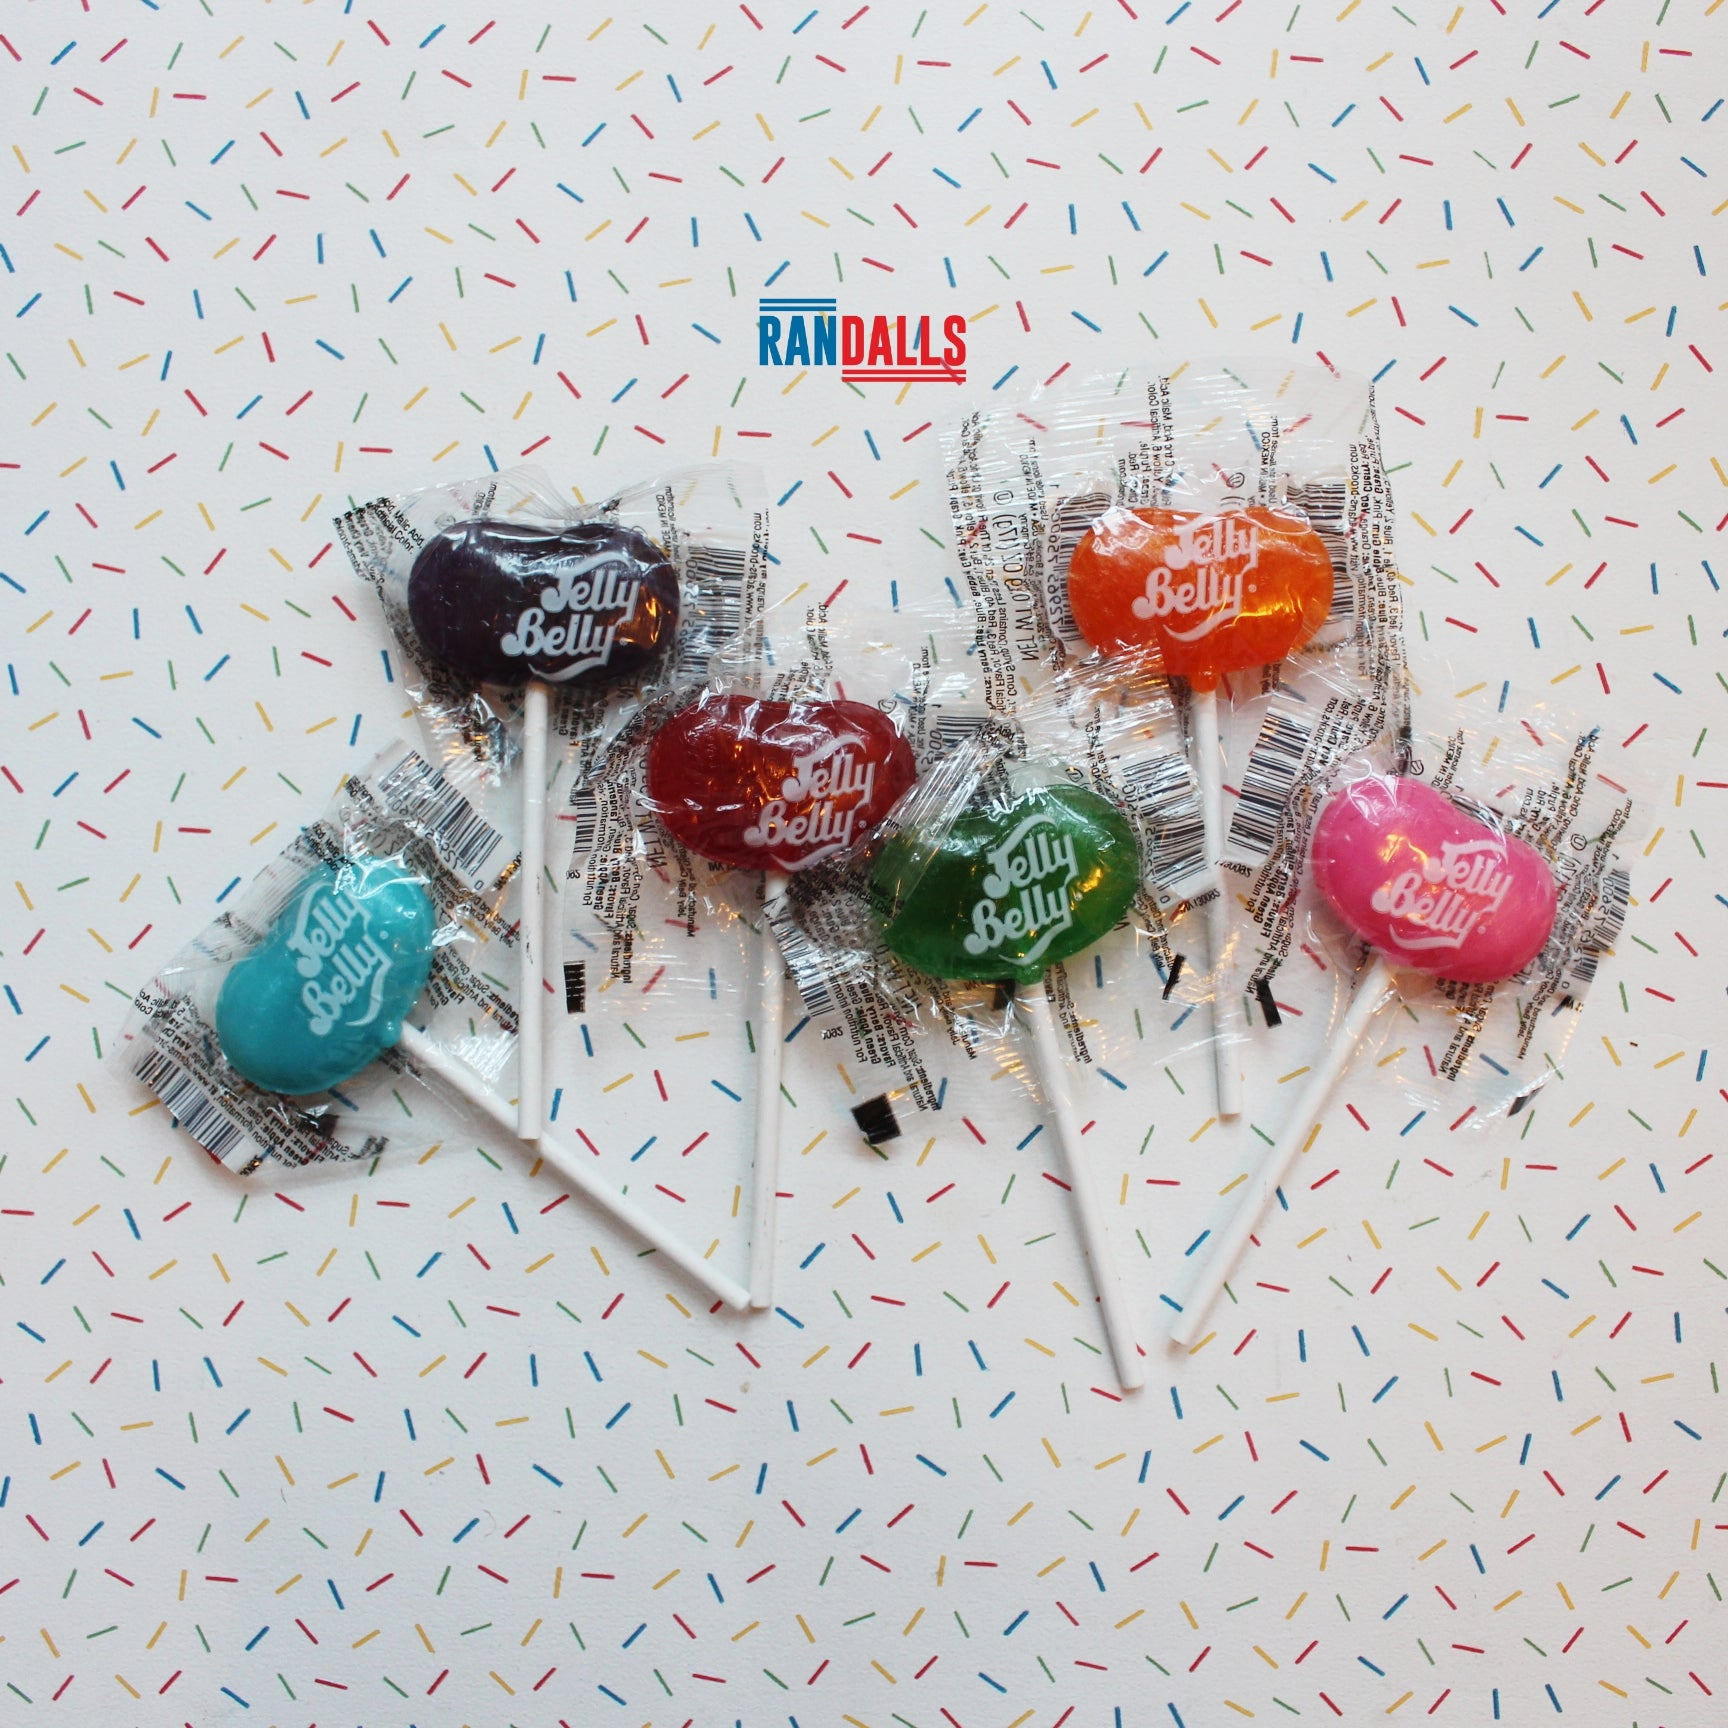 JELLY BELLY LOLLIPOPS